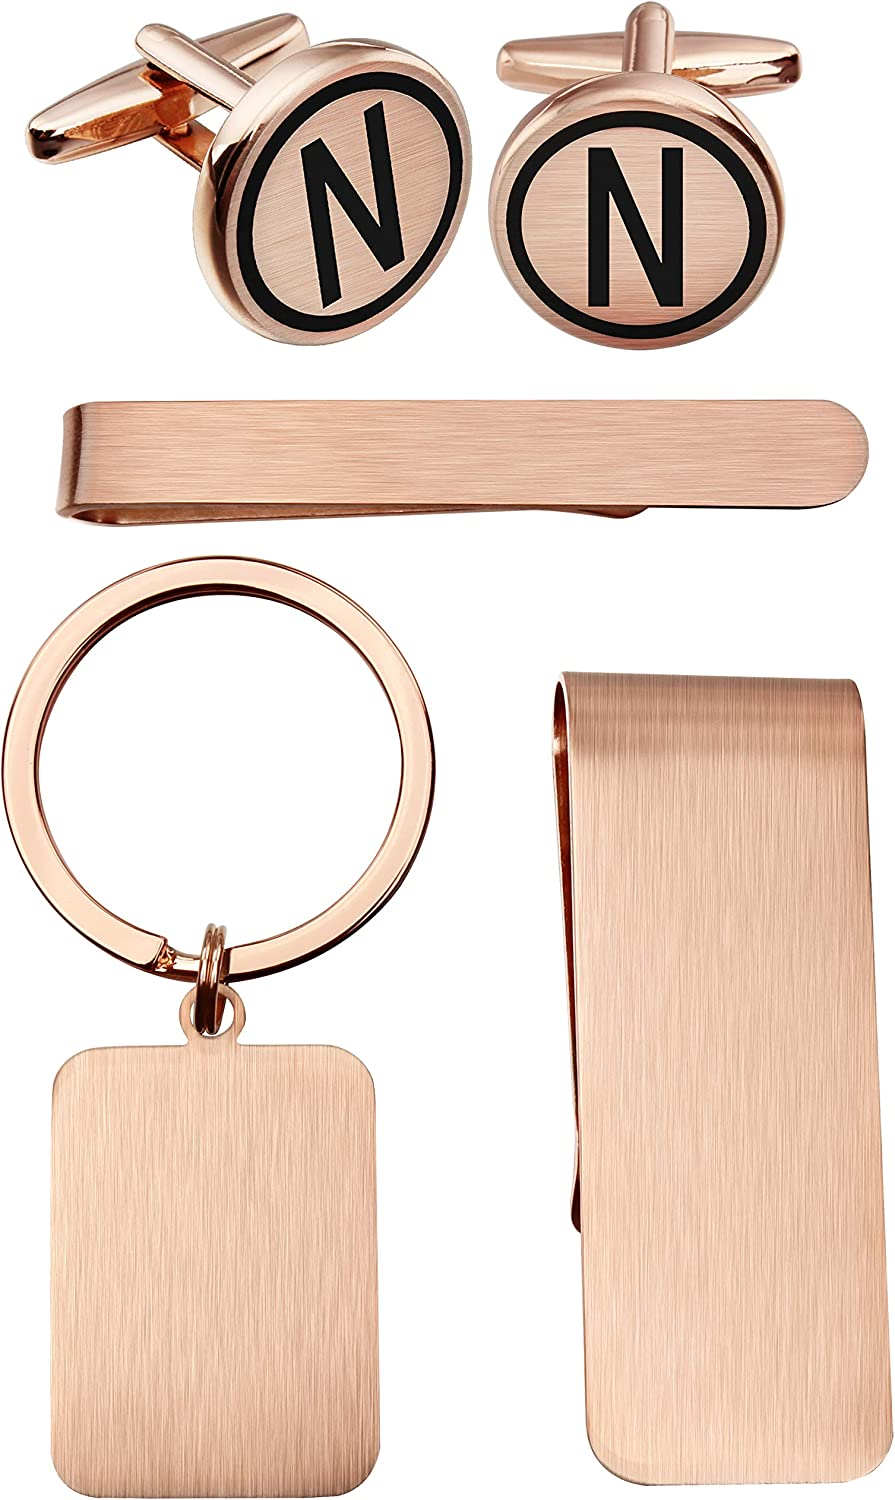 Engravable Rose Gold Tone Cufflinks with Presentation Box